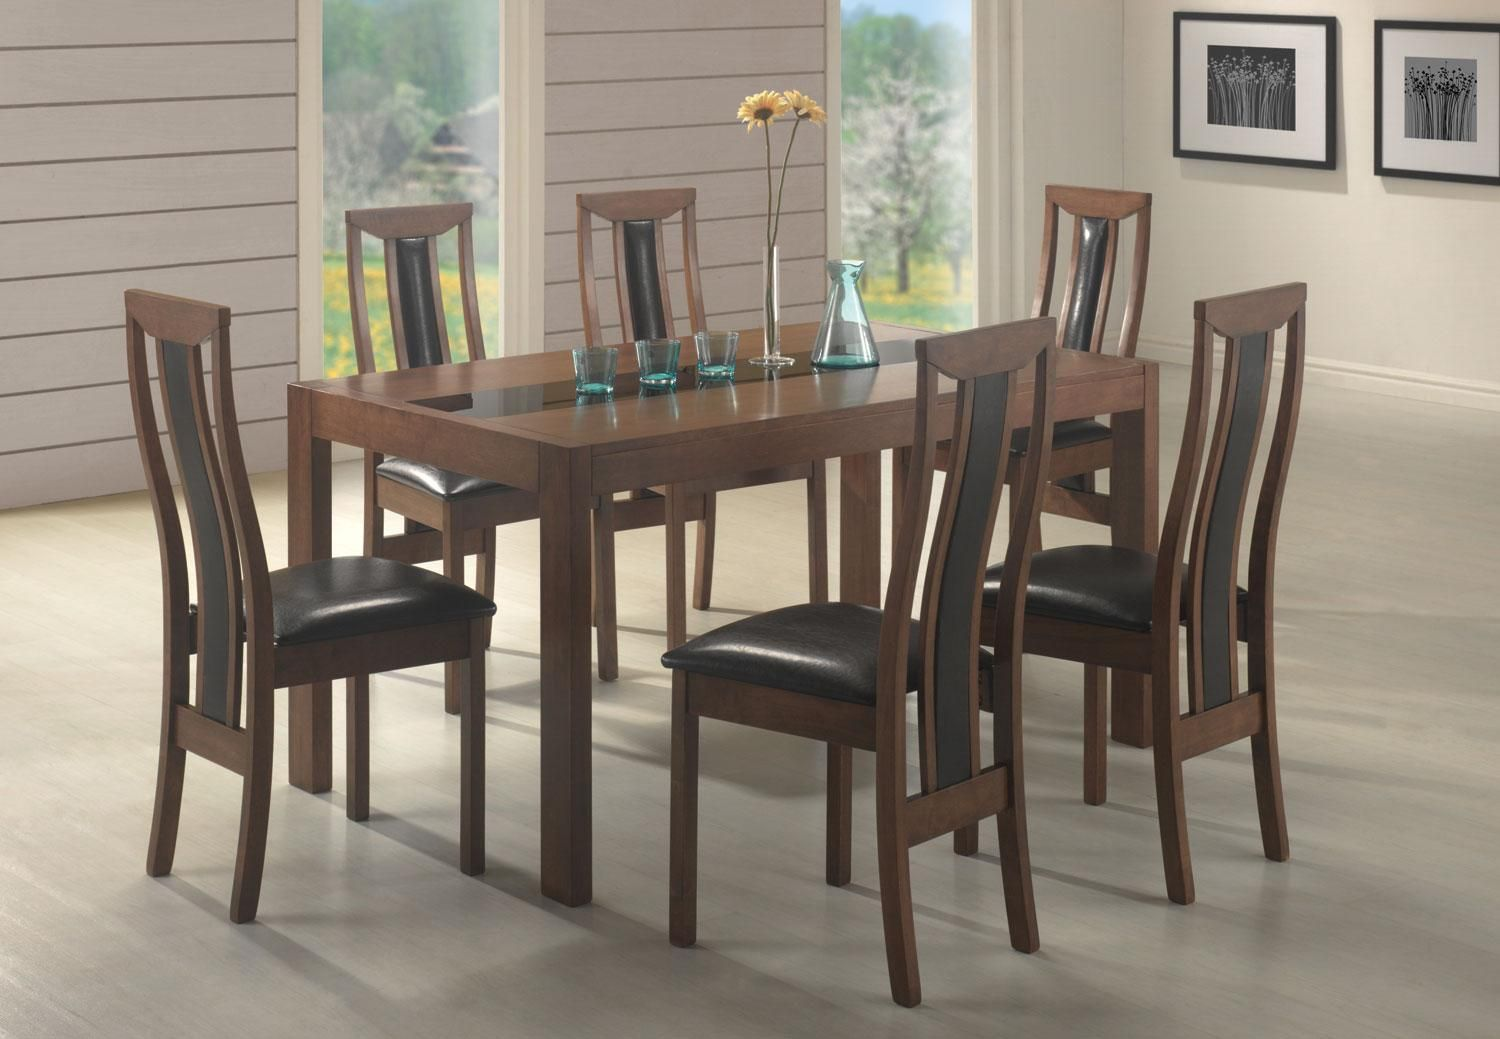 Cc dining tables table pinterest dining room sets room